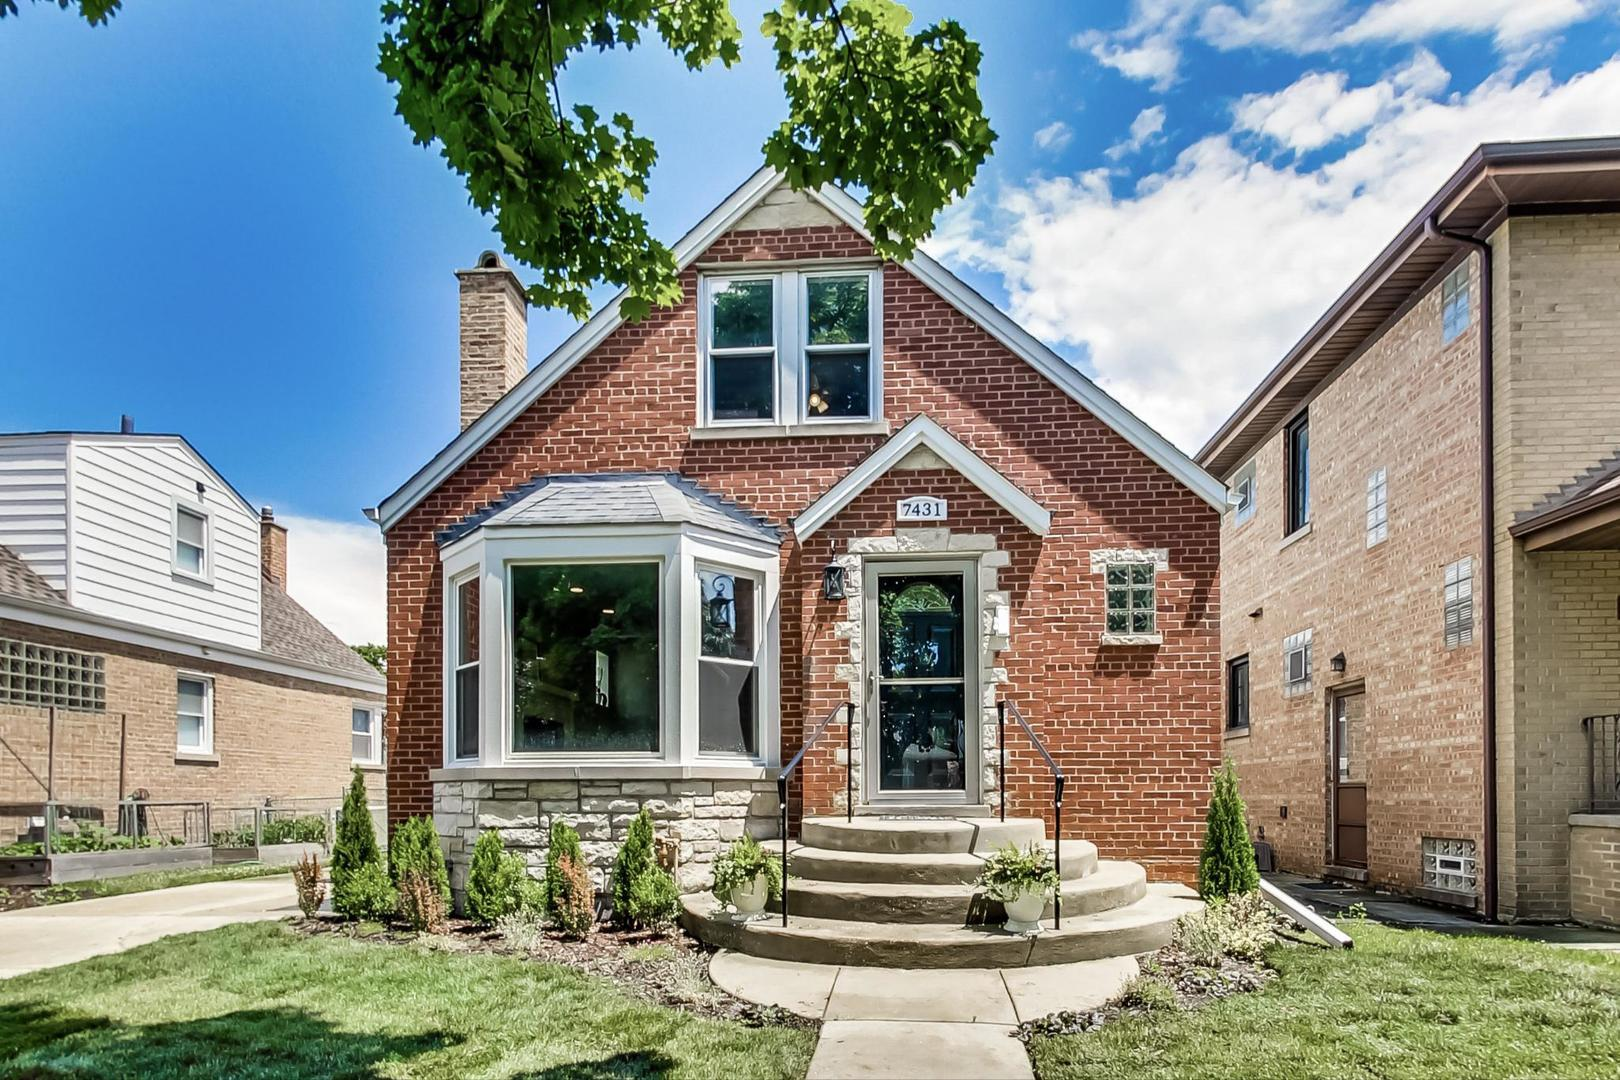 7431 N Oleander Avenue, Chicago, IL 60631 - #: 10757301